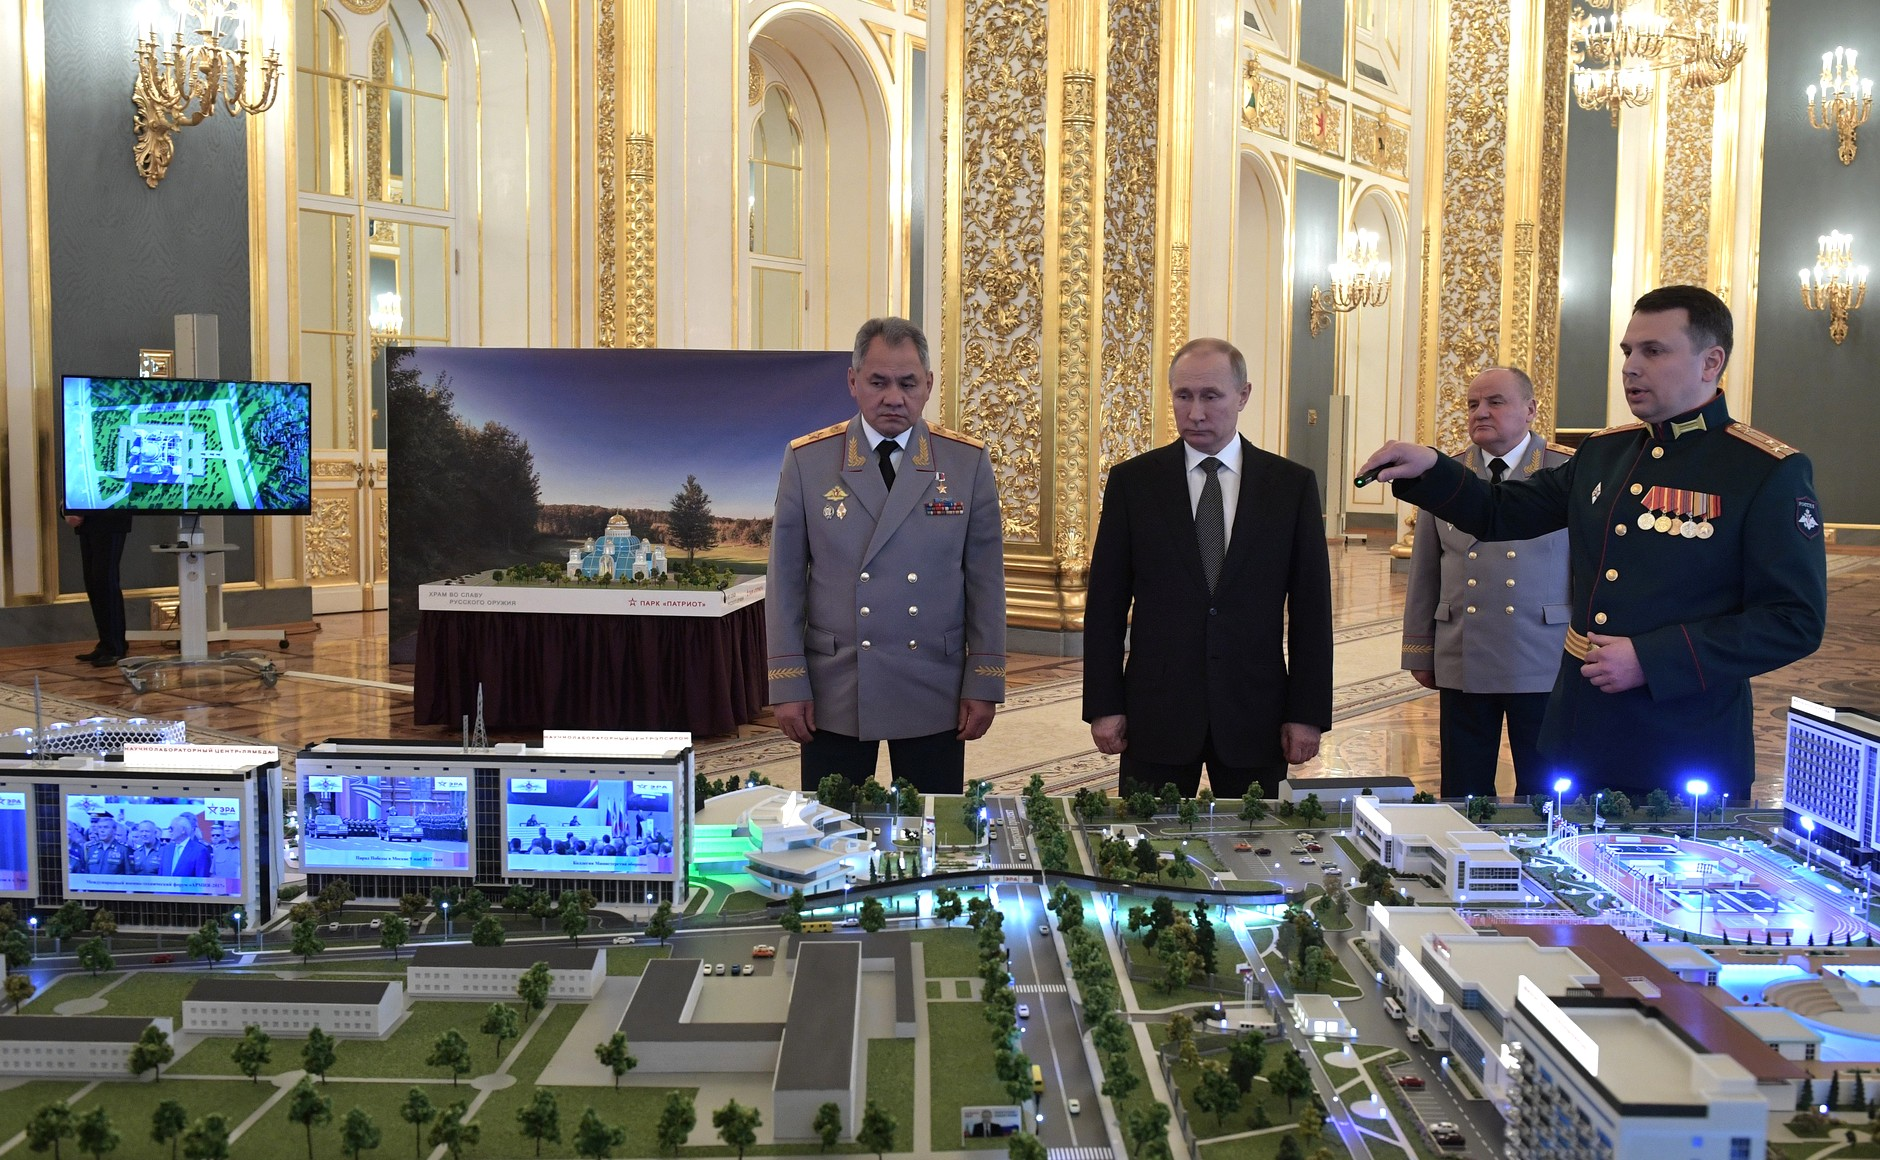 Russian Minister of Defence Sergei Shoigu and President Vladimir Putin attend a presentation on the Era military innovation technopolis in the Kremlin's St.Andrew Hall. (President of Russia)